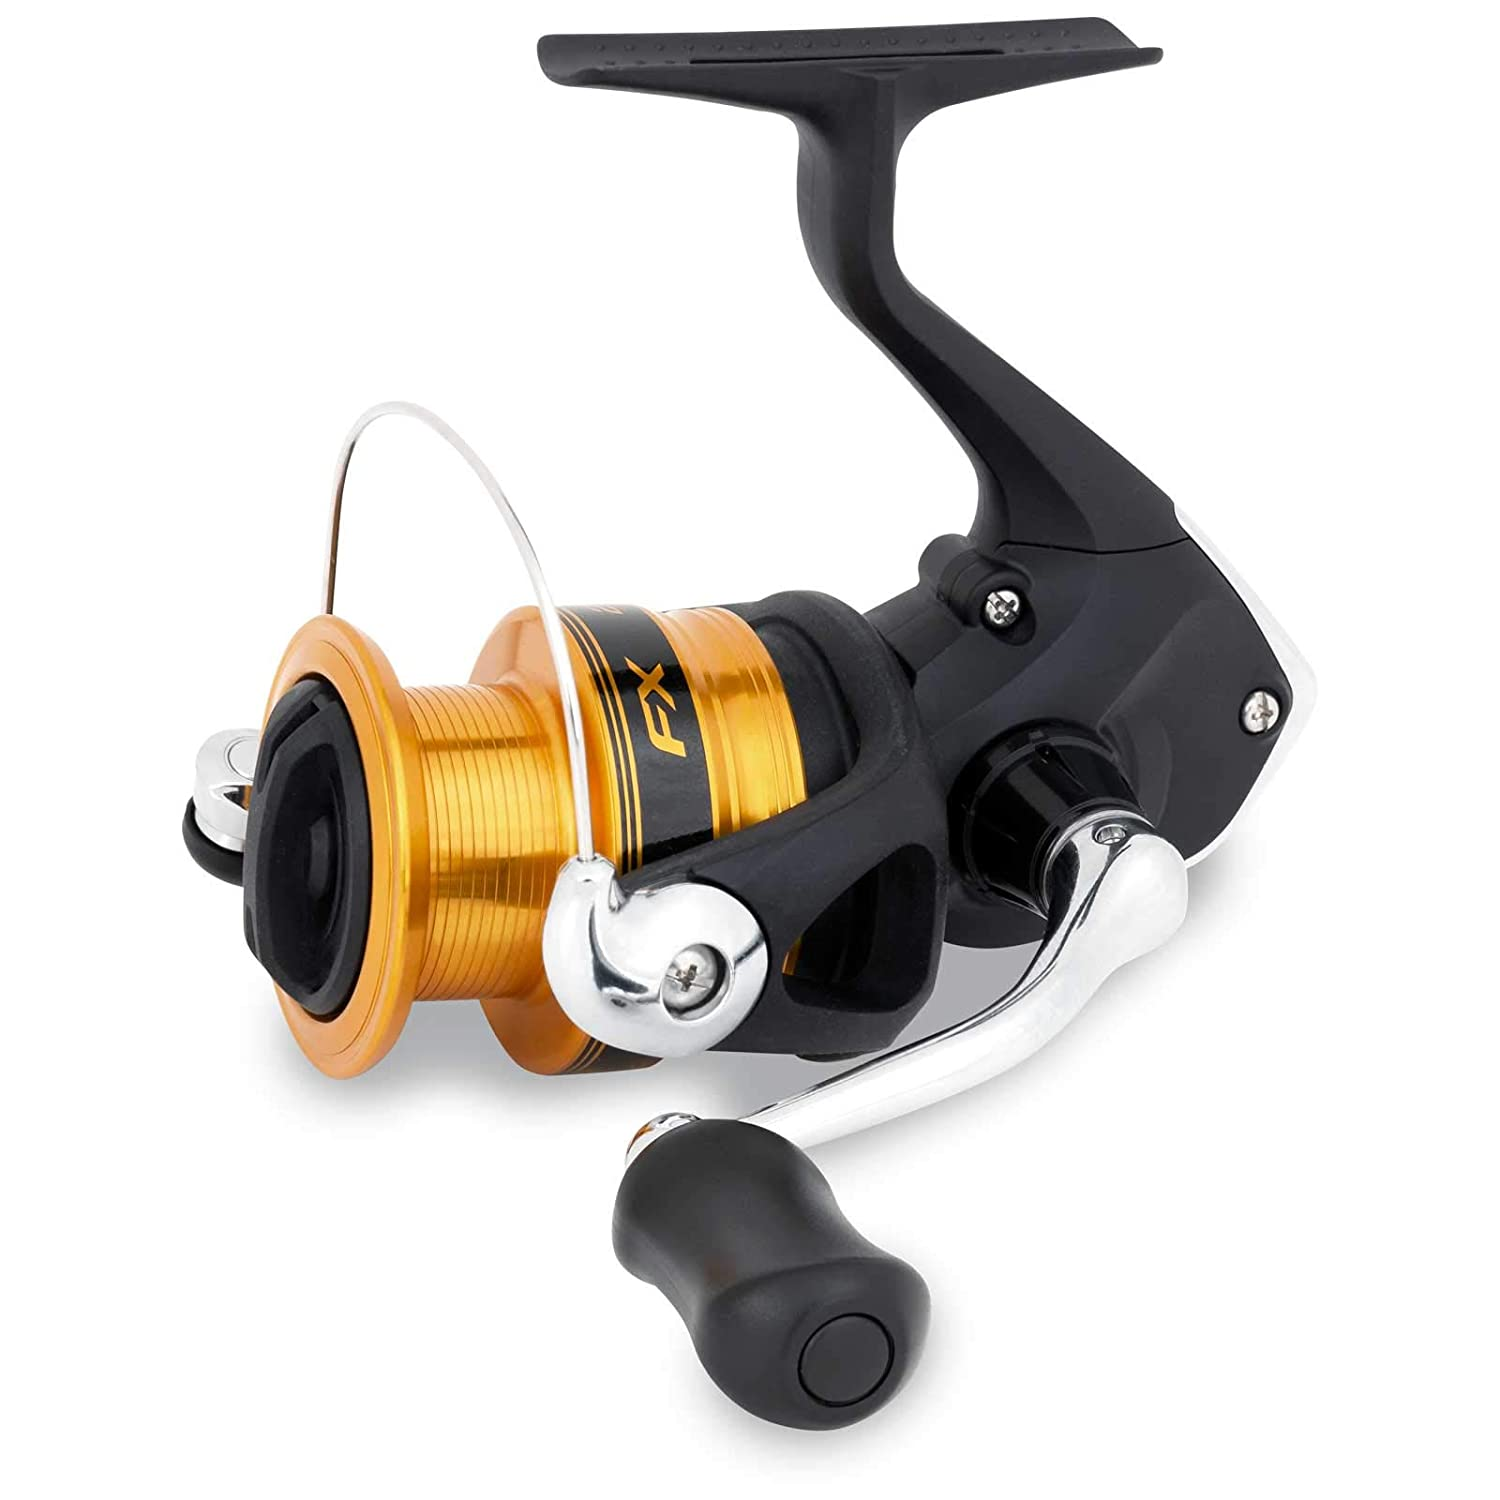 FX 2500FC SHIMANO Angelrolle